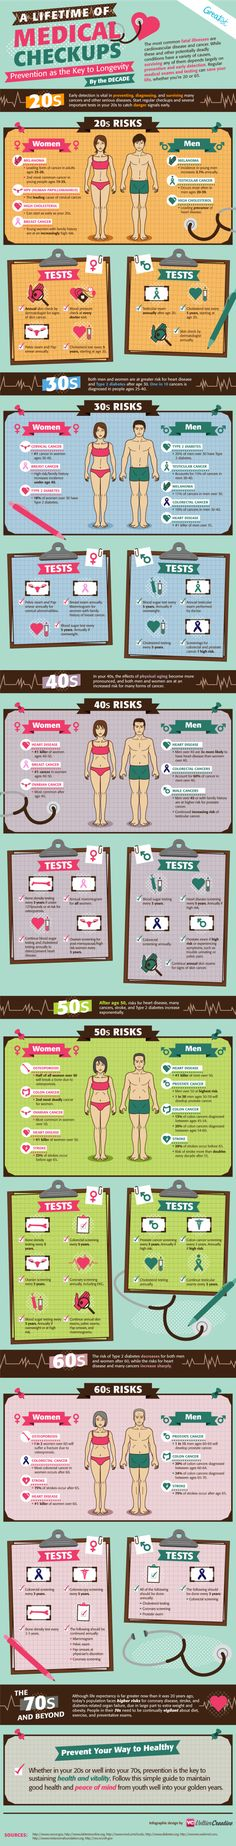 According to today's infographic, the most common fatal illnesses are cancer and cardiovascular disease.